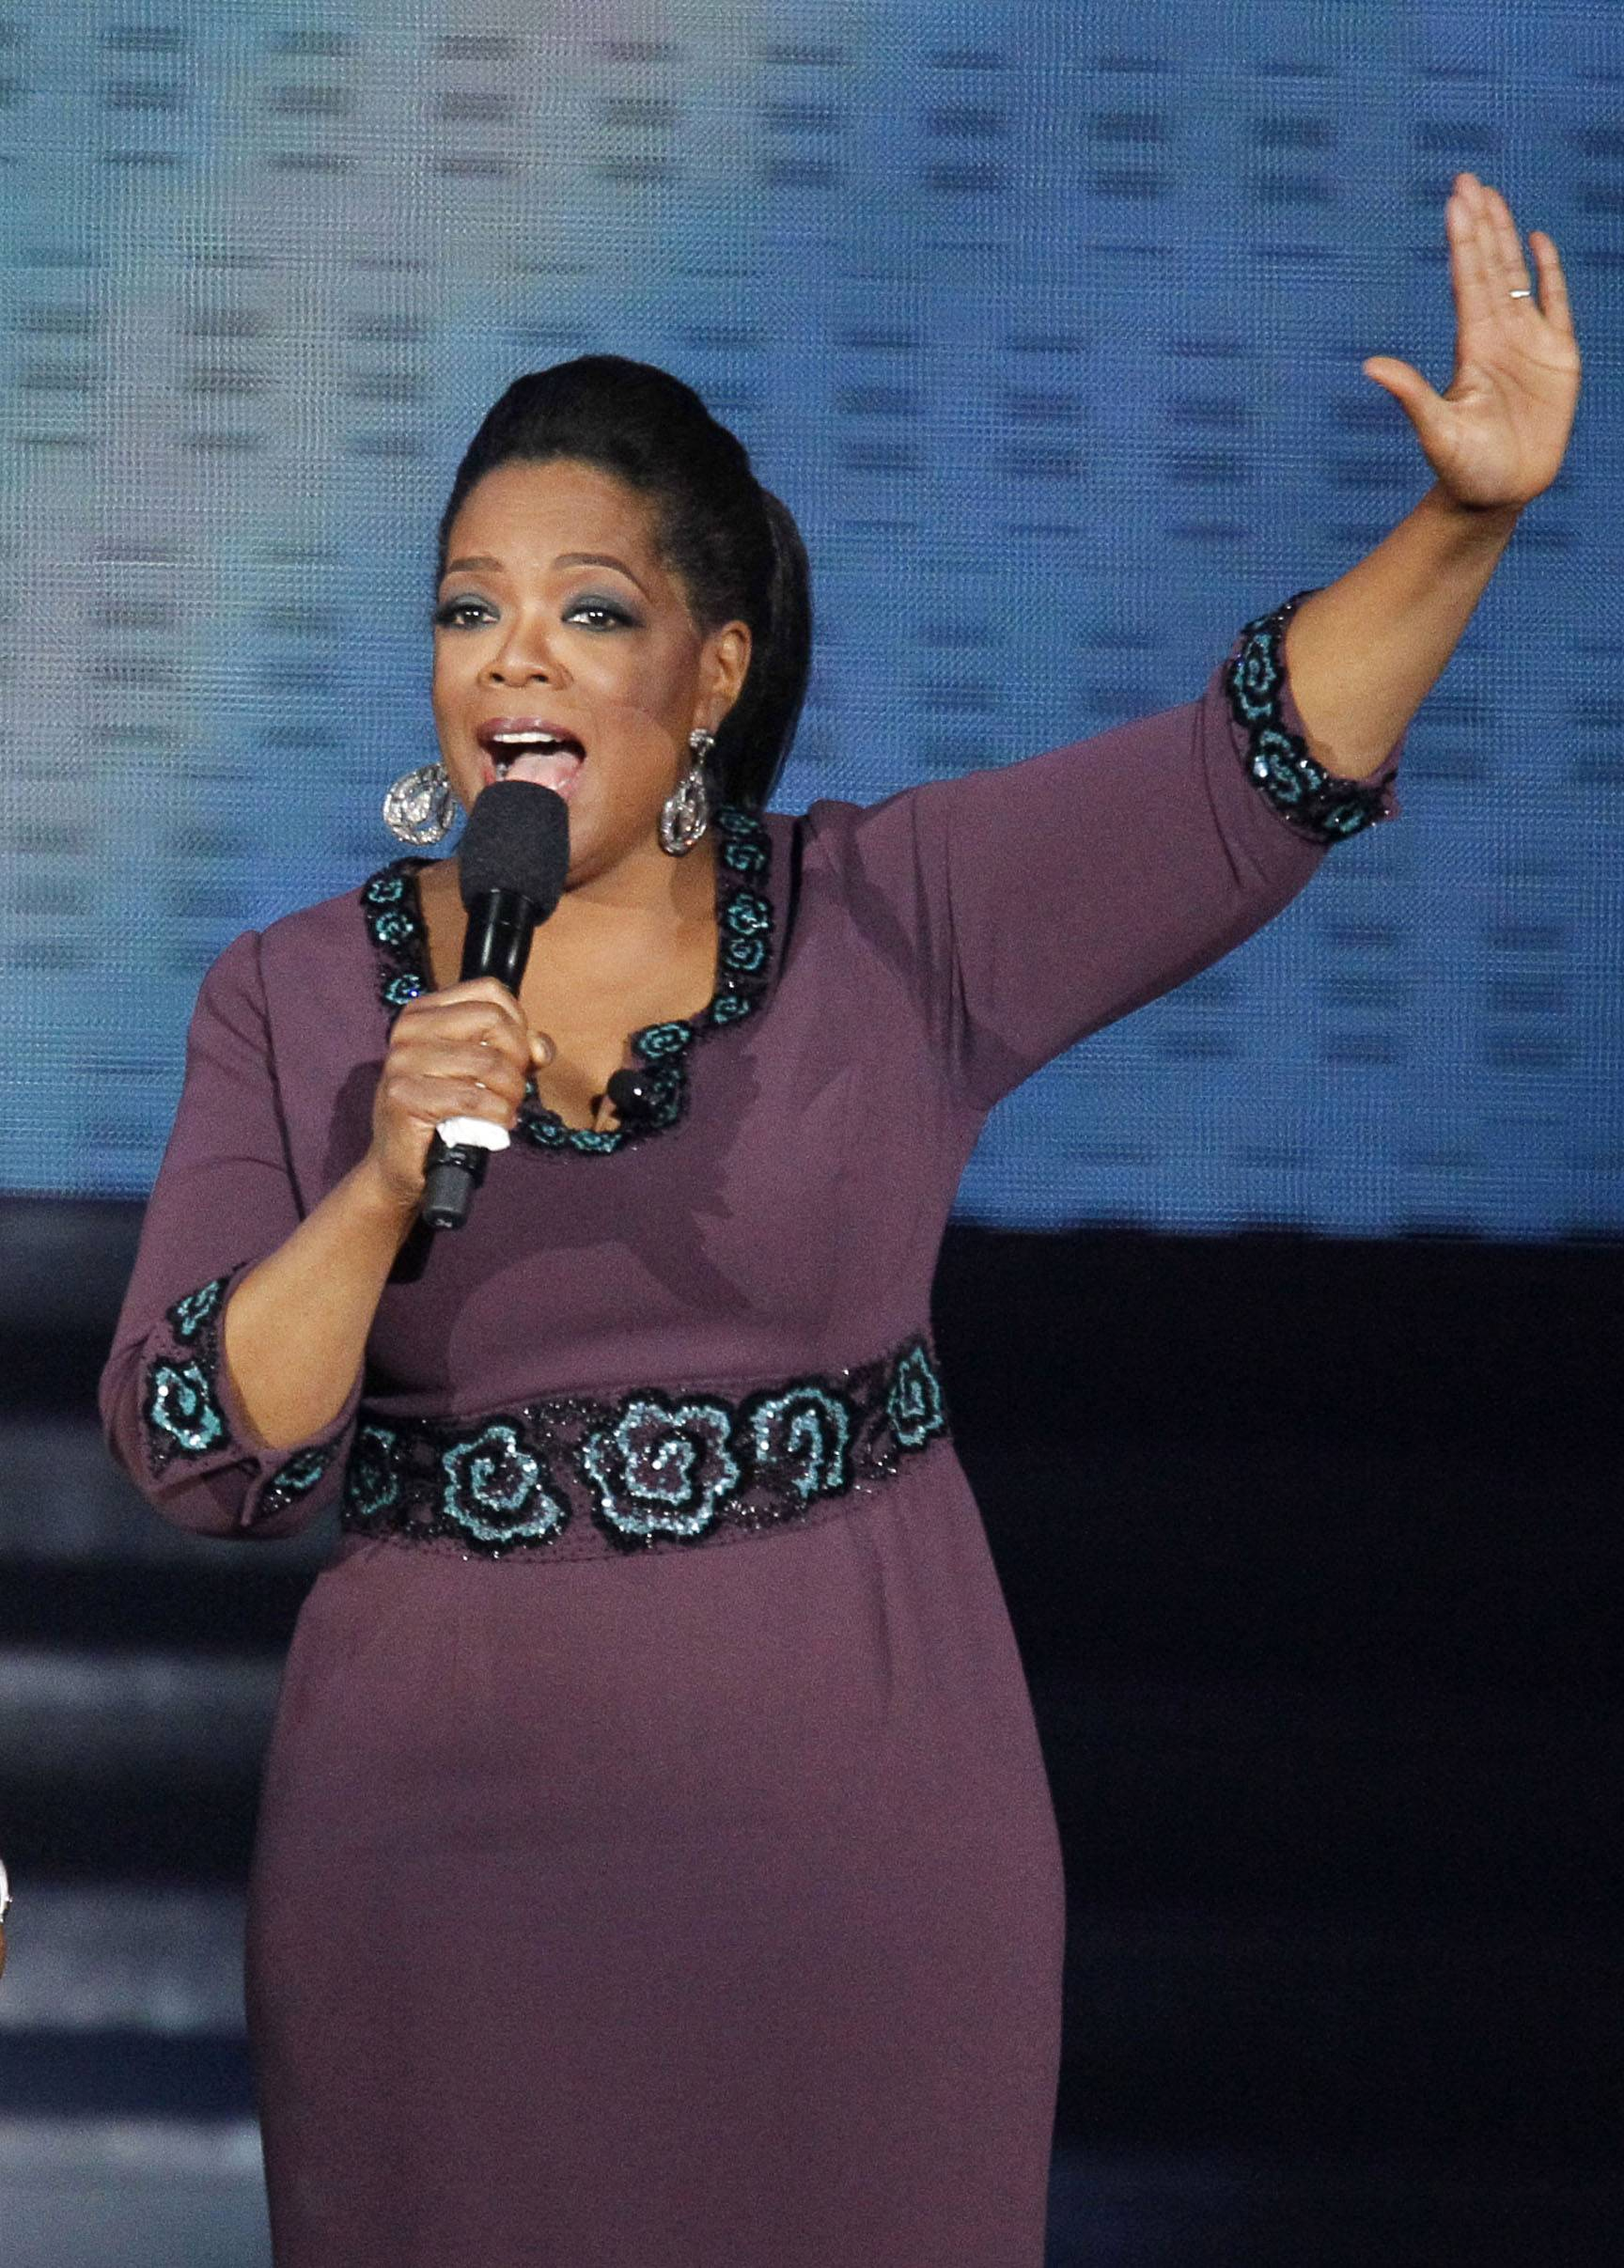 When Oprah says goodbye, will she really be gone?